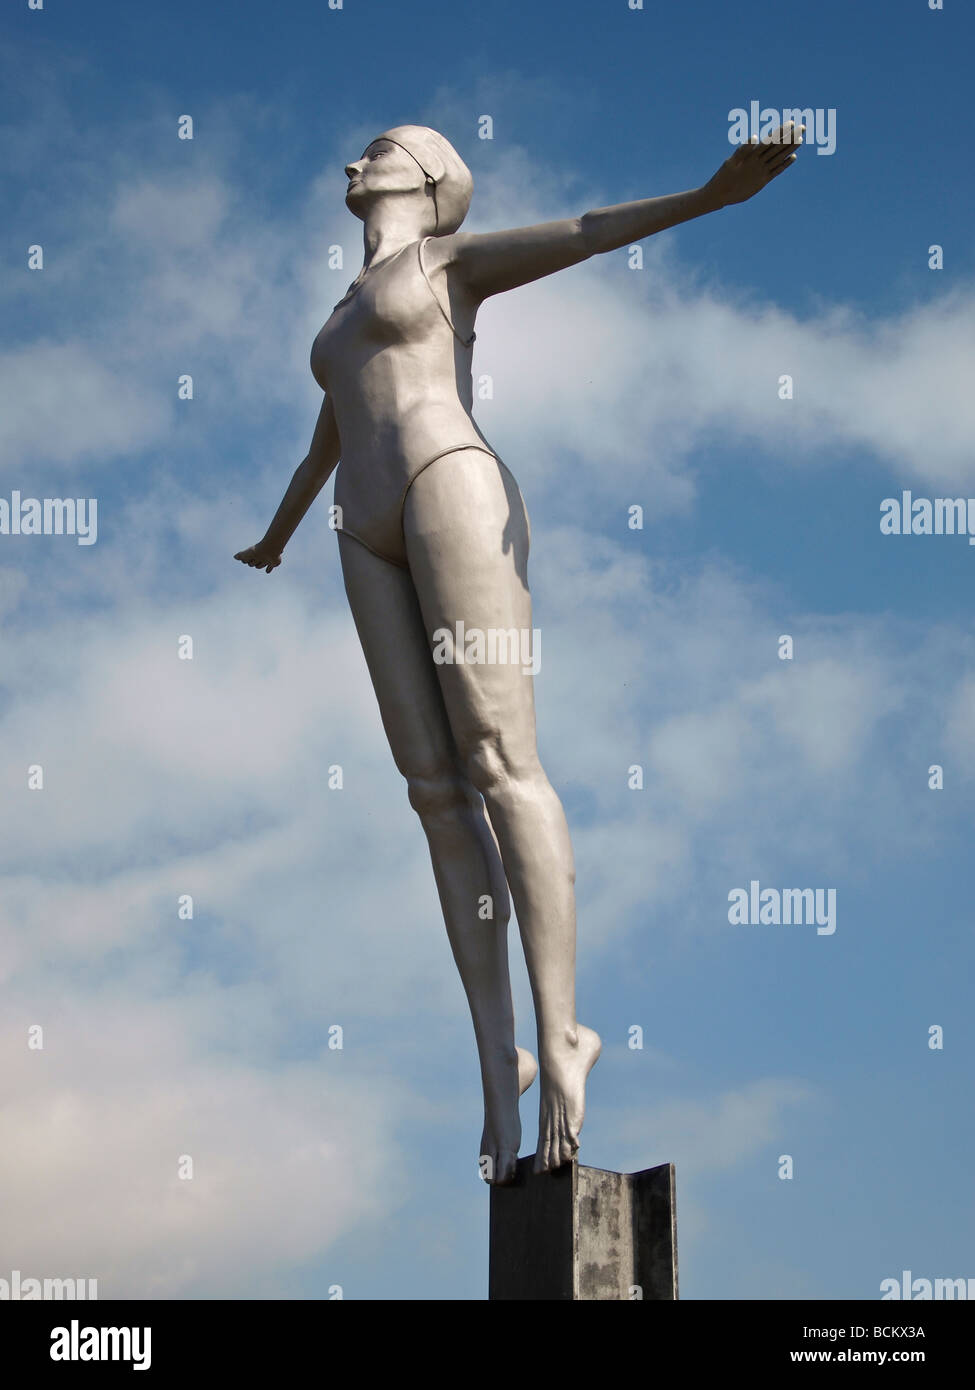 Diving Belle statue at Scarborough Harbour Yorkshire UK - Stock Image